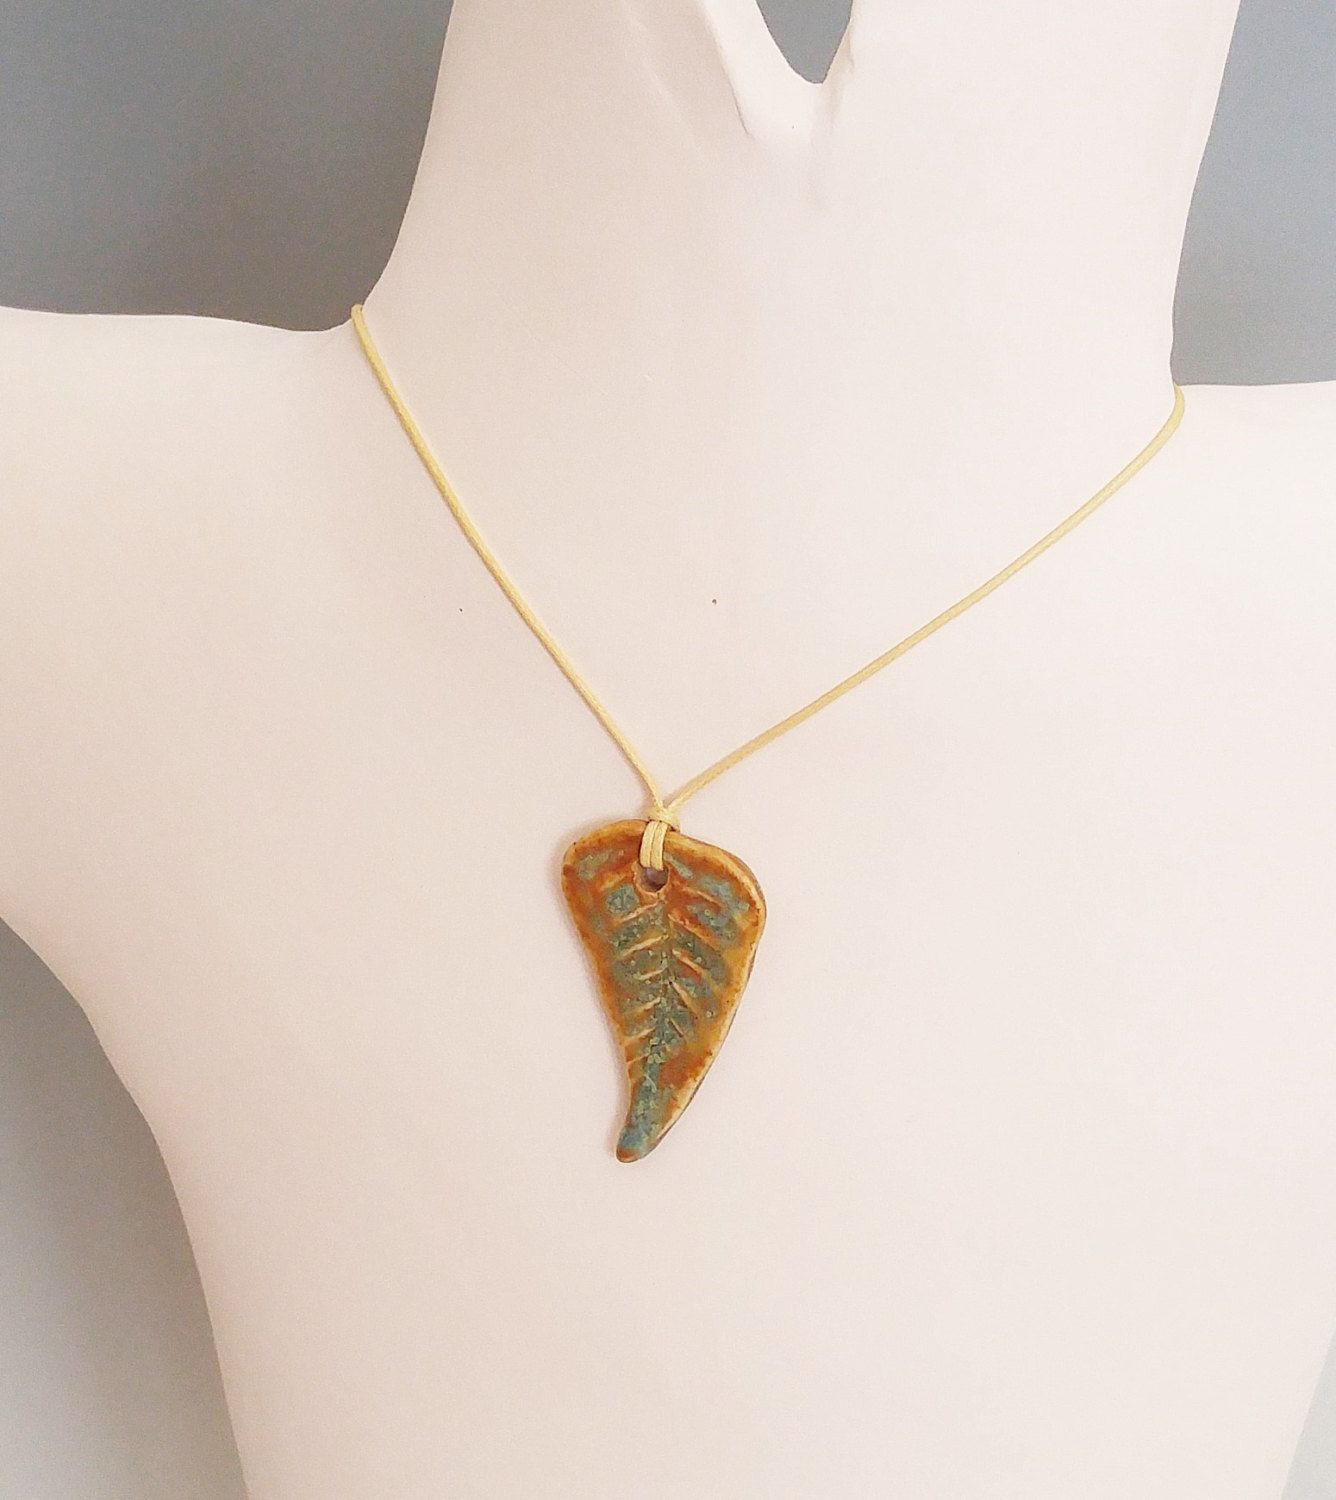 Make a fashion statement with this ceramic fern pendant necklace make a fashion statement with this ceramic fern pendant necklace save money when you like or pin i handmade this ceramic pendant from stoneware clay mozeypictures Gallery